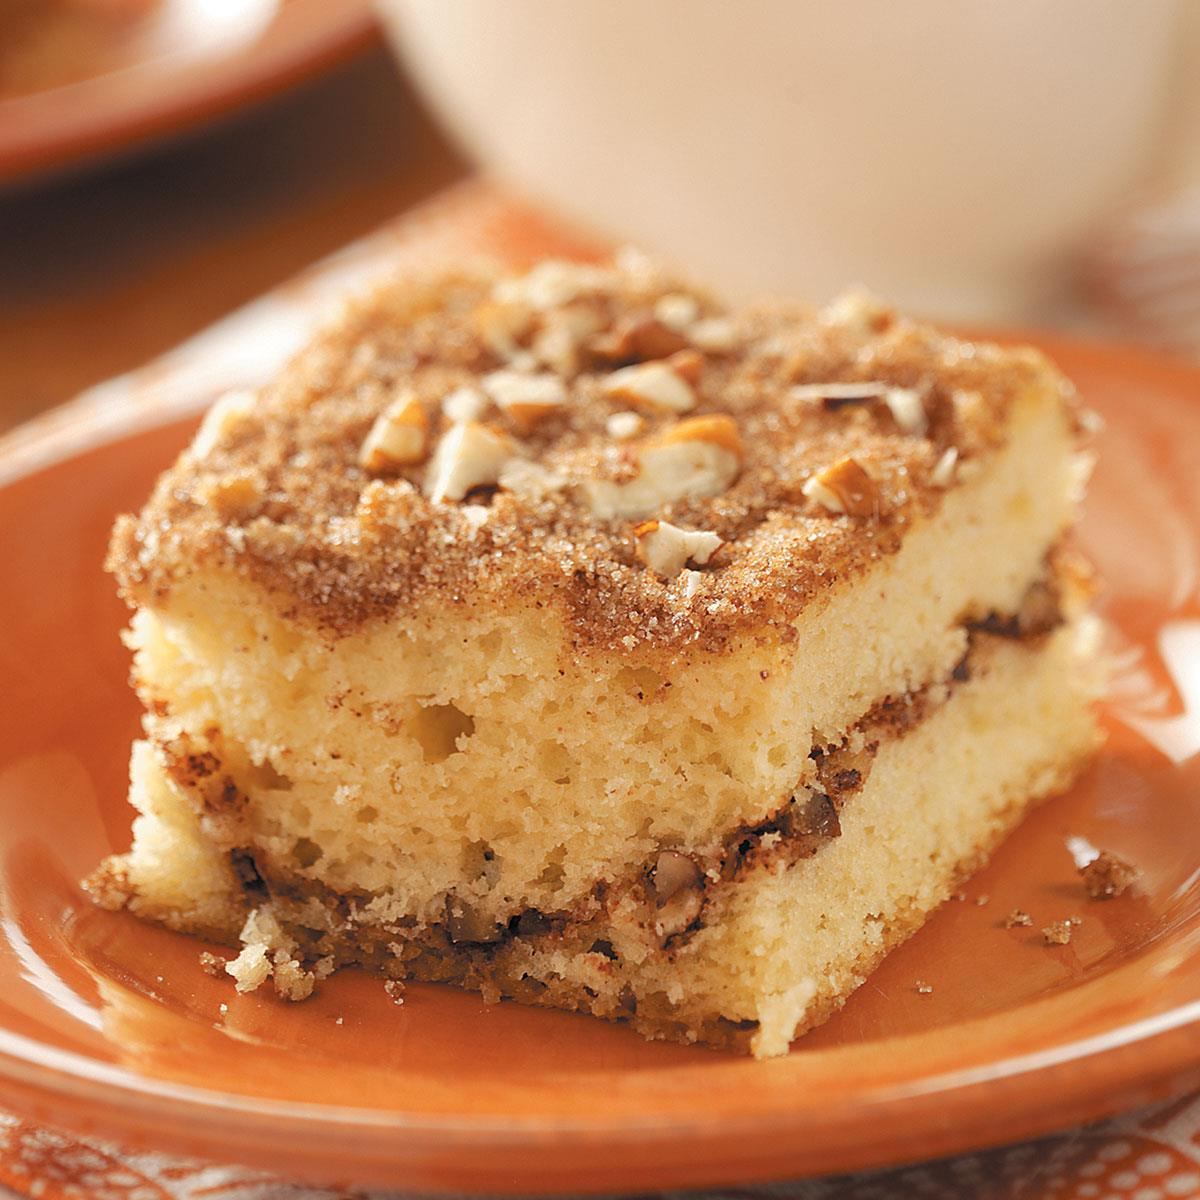 How to Make Sour Cream Coffee Cake